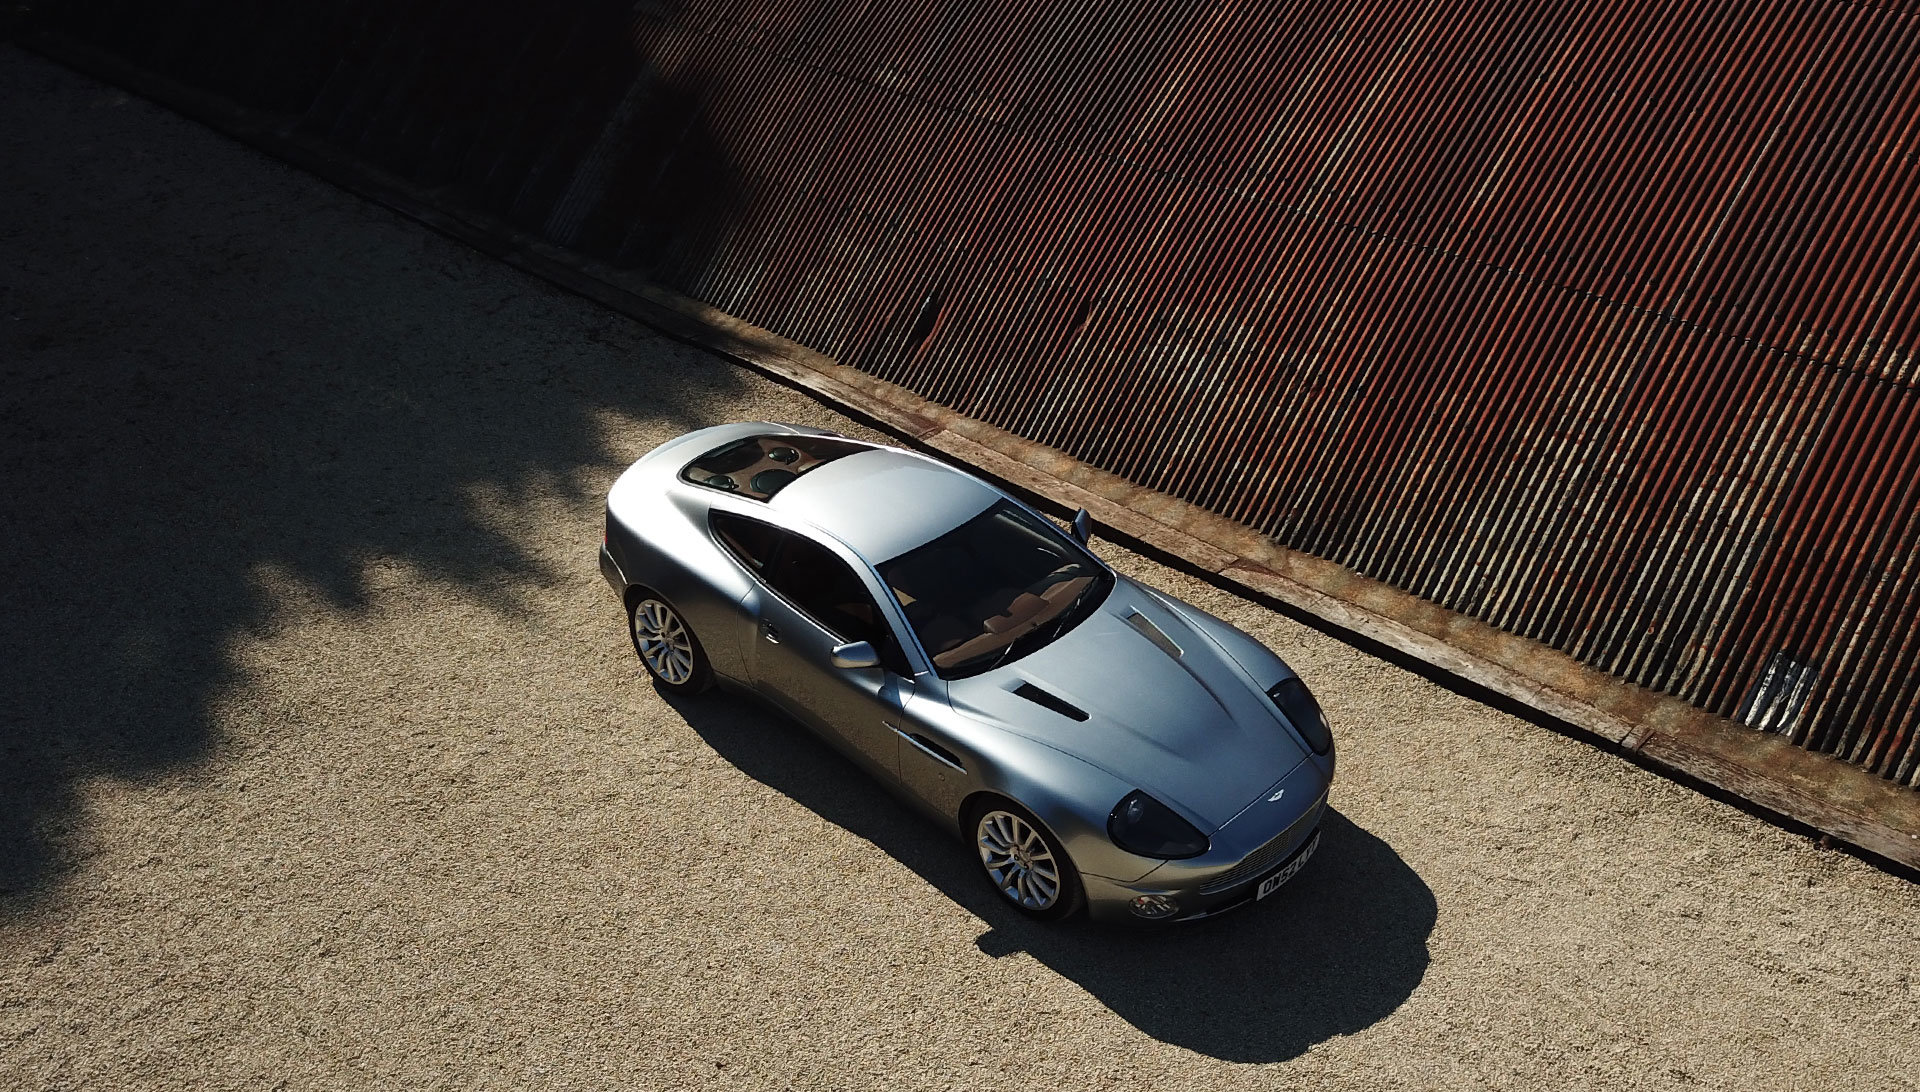 2003 Aston Martin V12 Vanquish - 22,000 miles For Sale (picture 3 of 6)